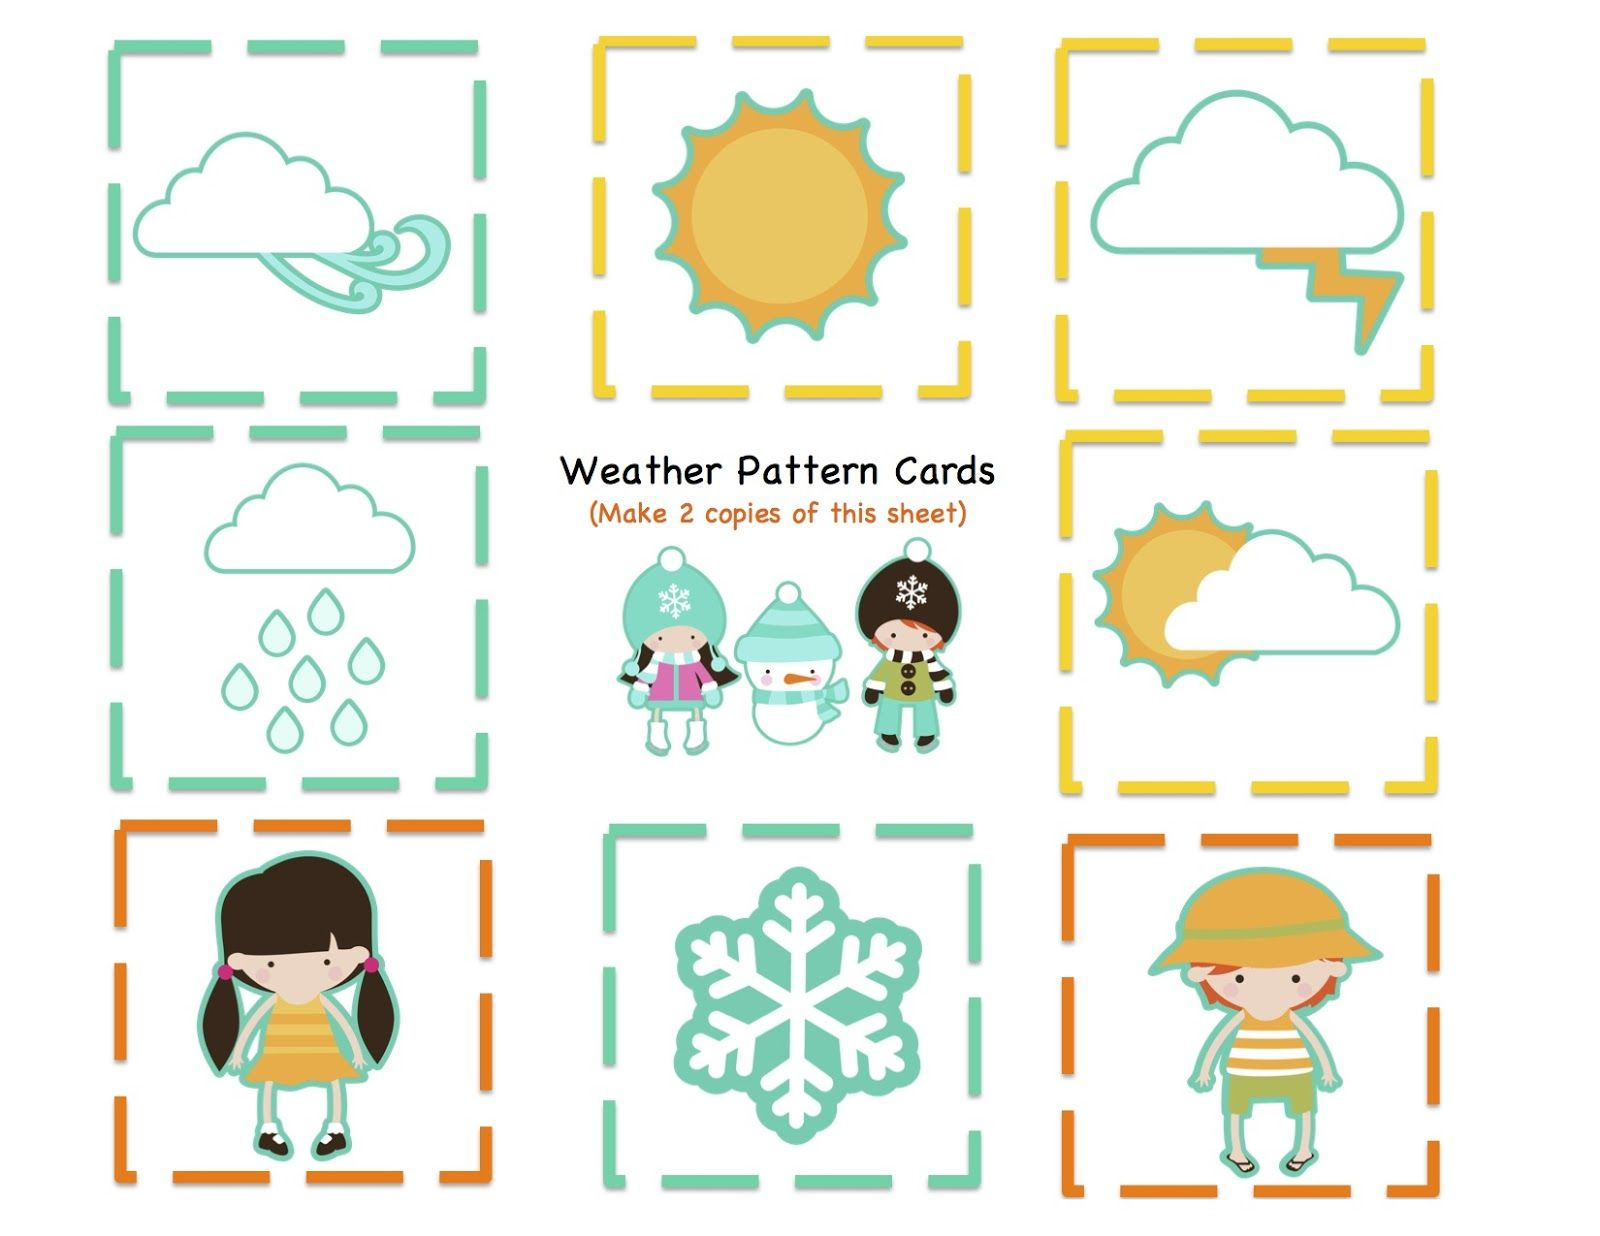 Weather Kids 9 Pattern Cards Jpg 1600 1236 With Images